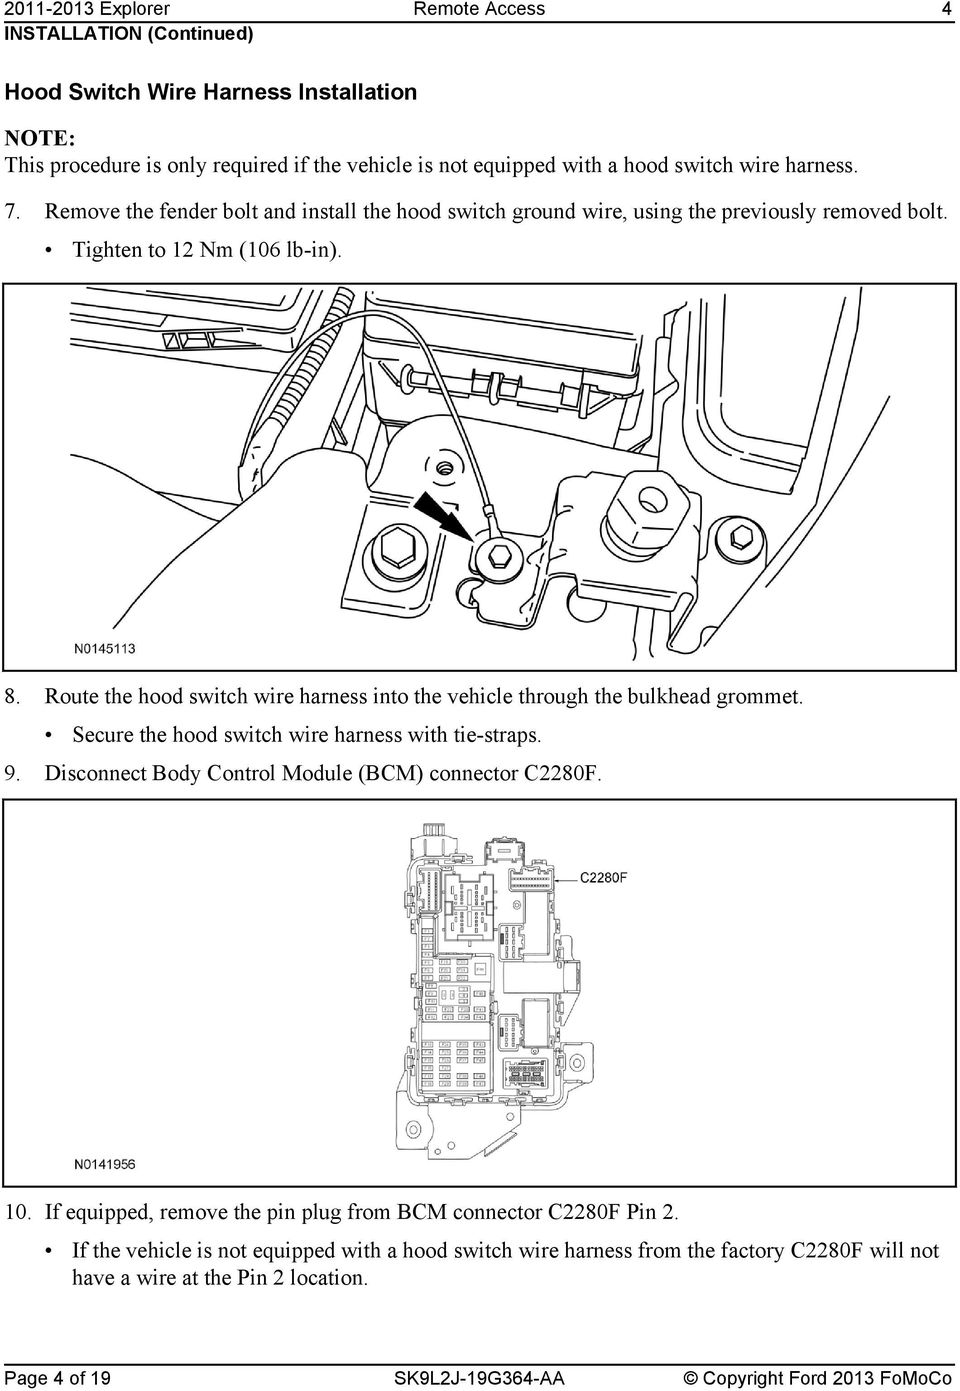 Remote Access System Installation Pdf Wiring Harness Install Route The Hood Switch Wire Into Vehicle Through Bulkhead Grommet Secure